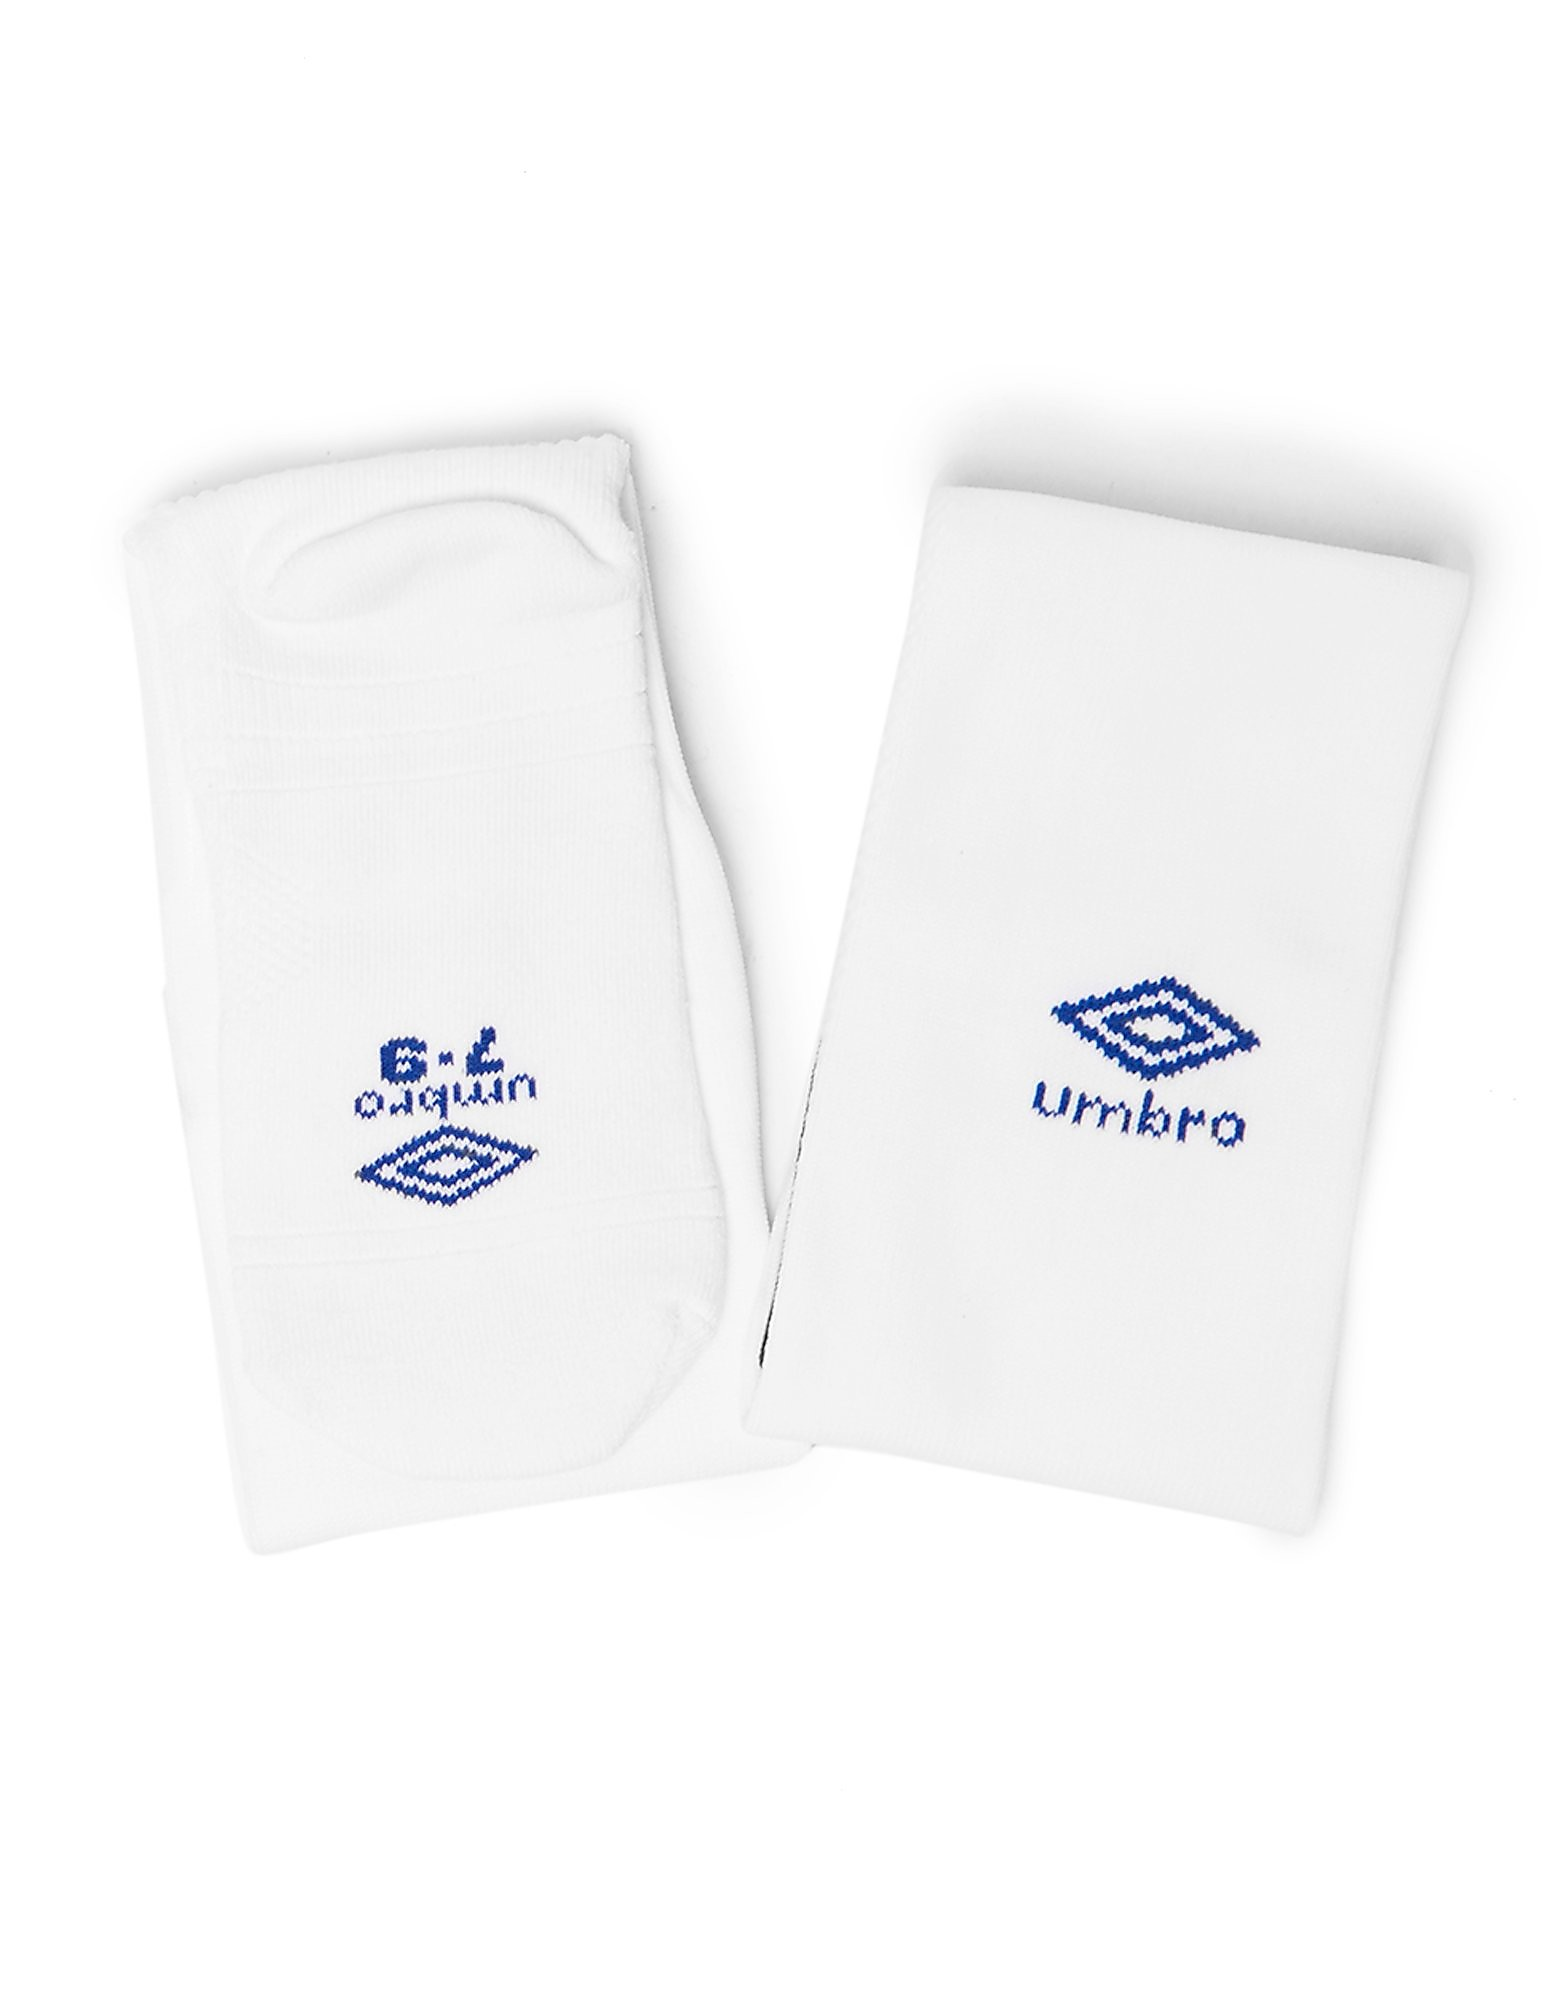 Umbro Everton FC 2017/18 Home Socks PRE ORDER